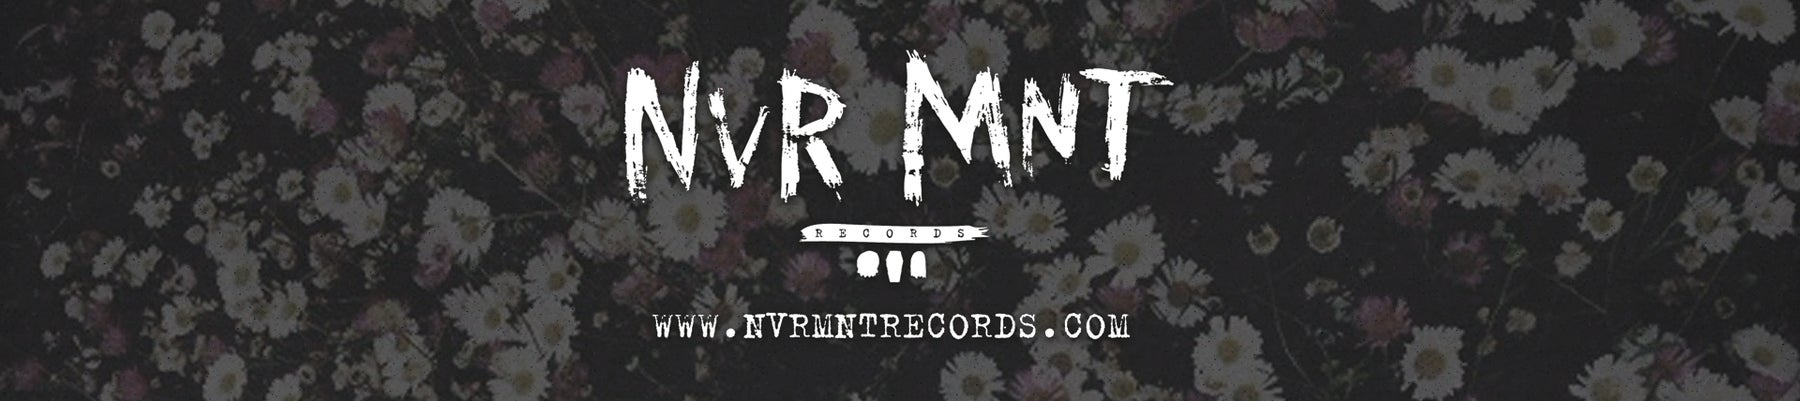 Never Meant Records